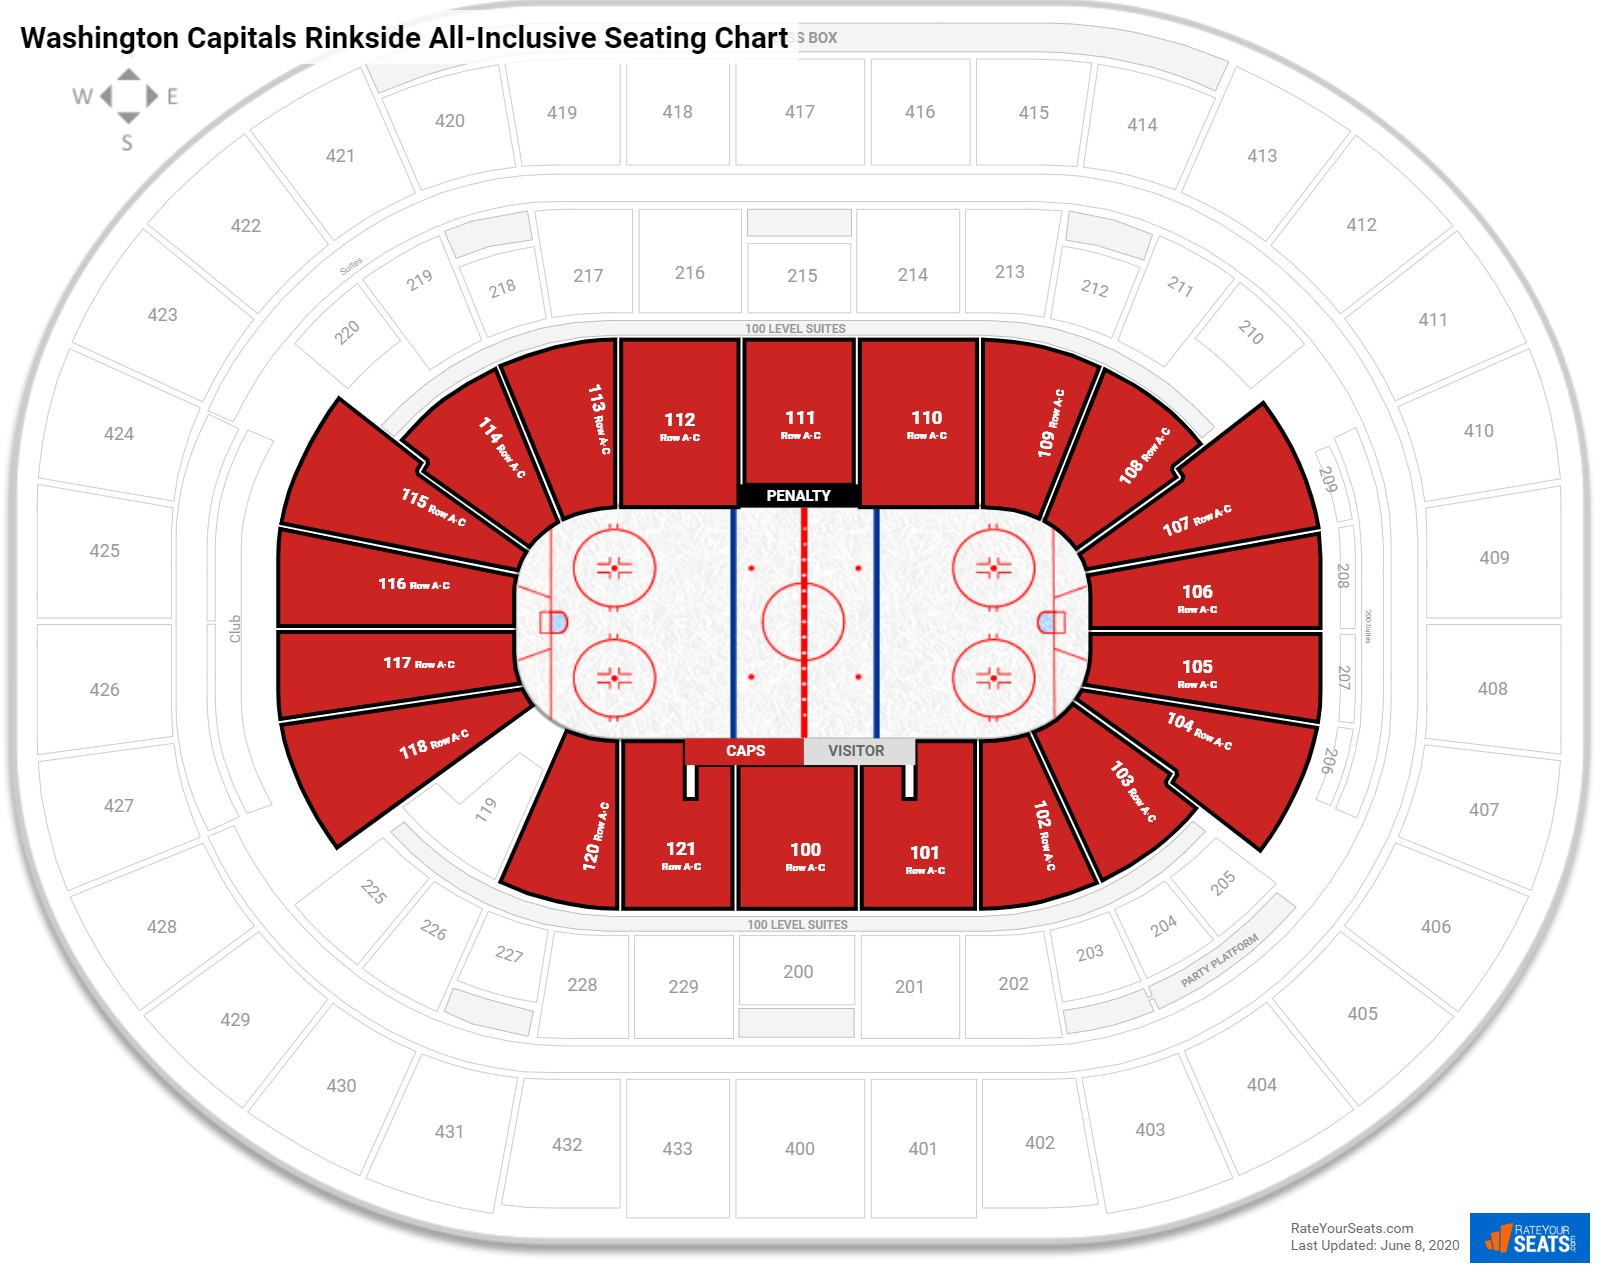 What Rows Have Free Food At The Verizon Center